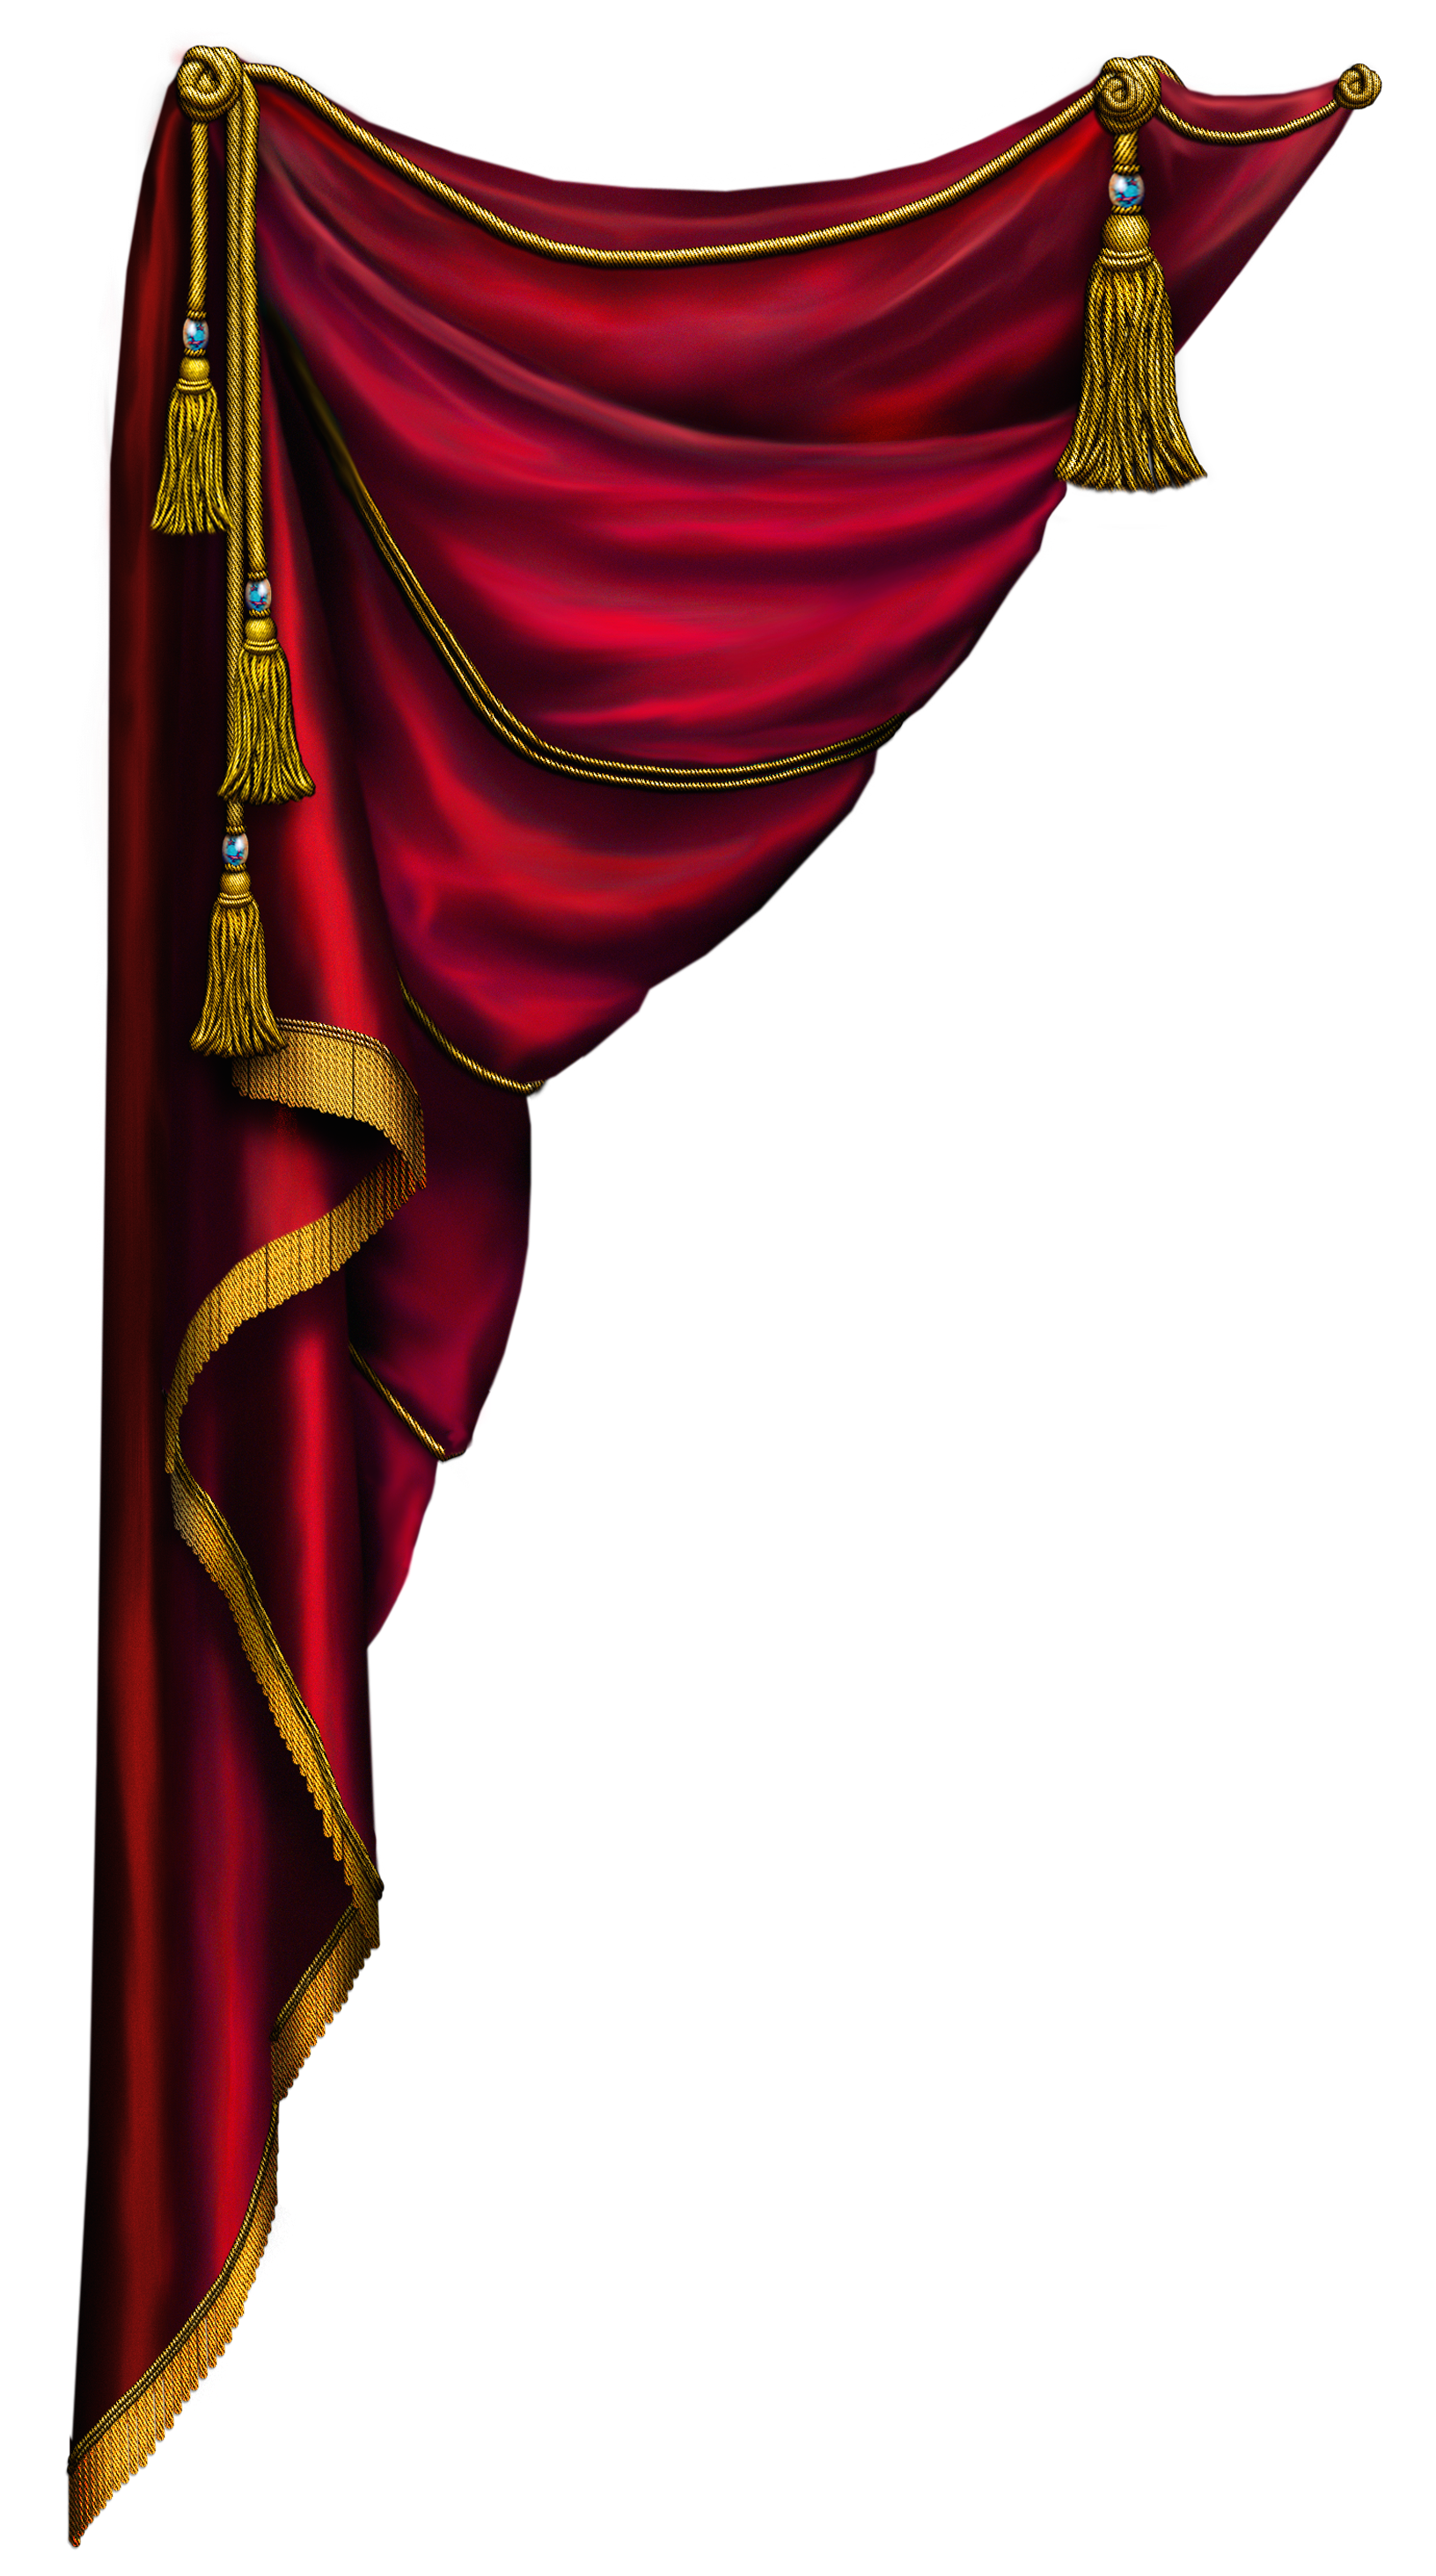 Pins vector red. Curtain left miscellaneous images